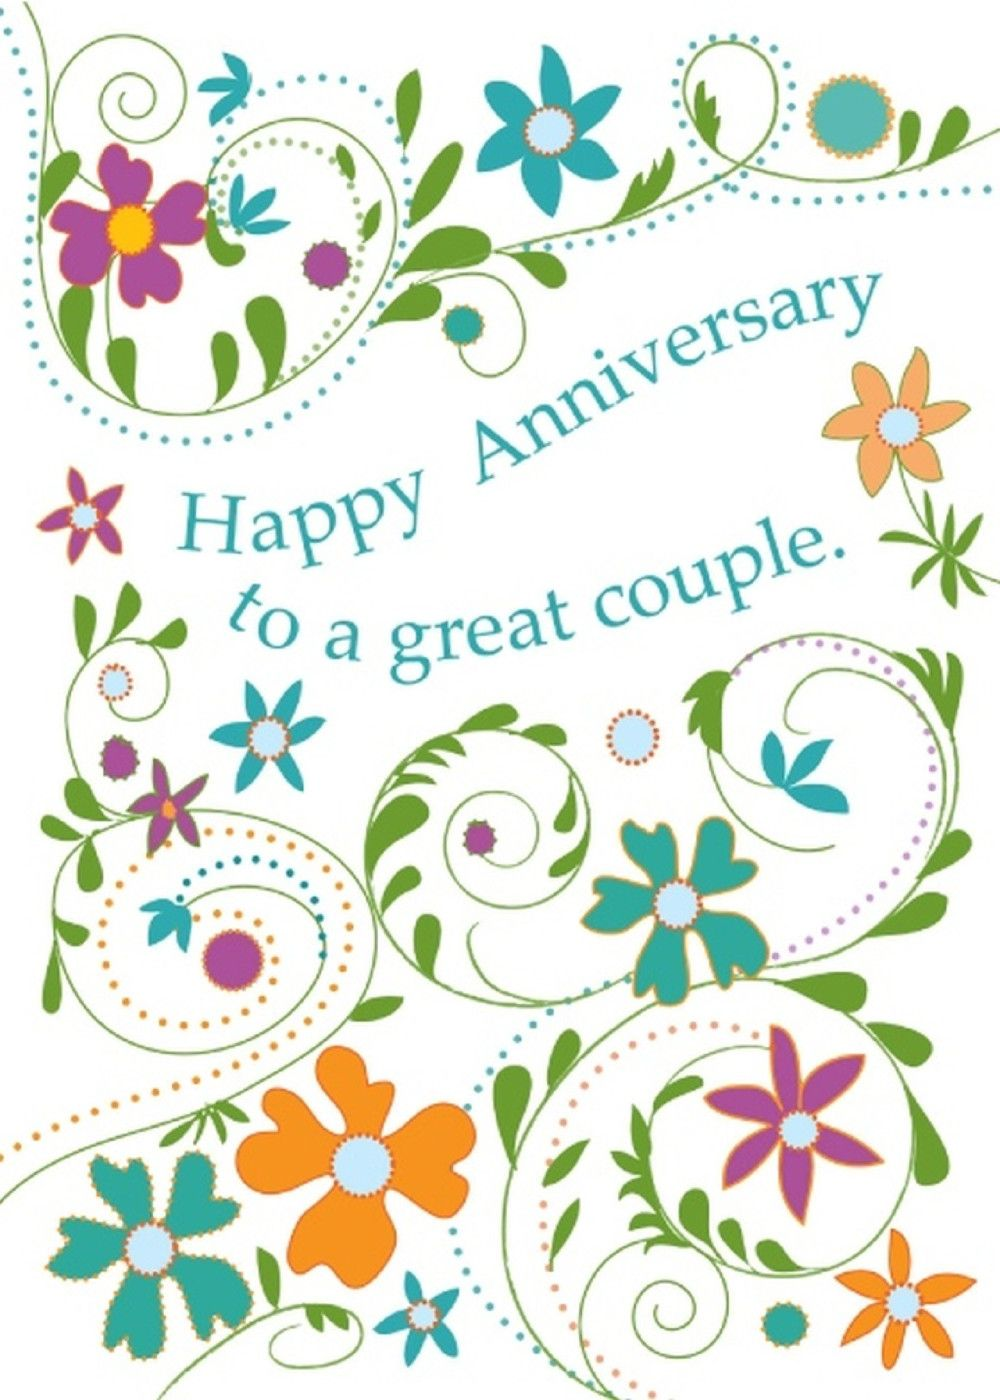 Anniv Card | Happy anniversary friends, Happy anniversary ...